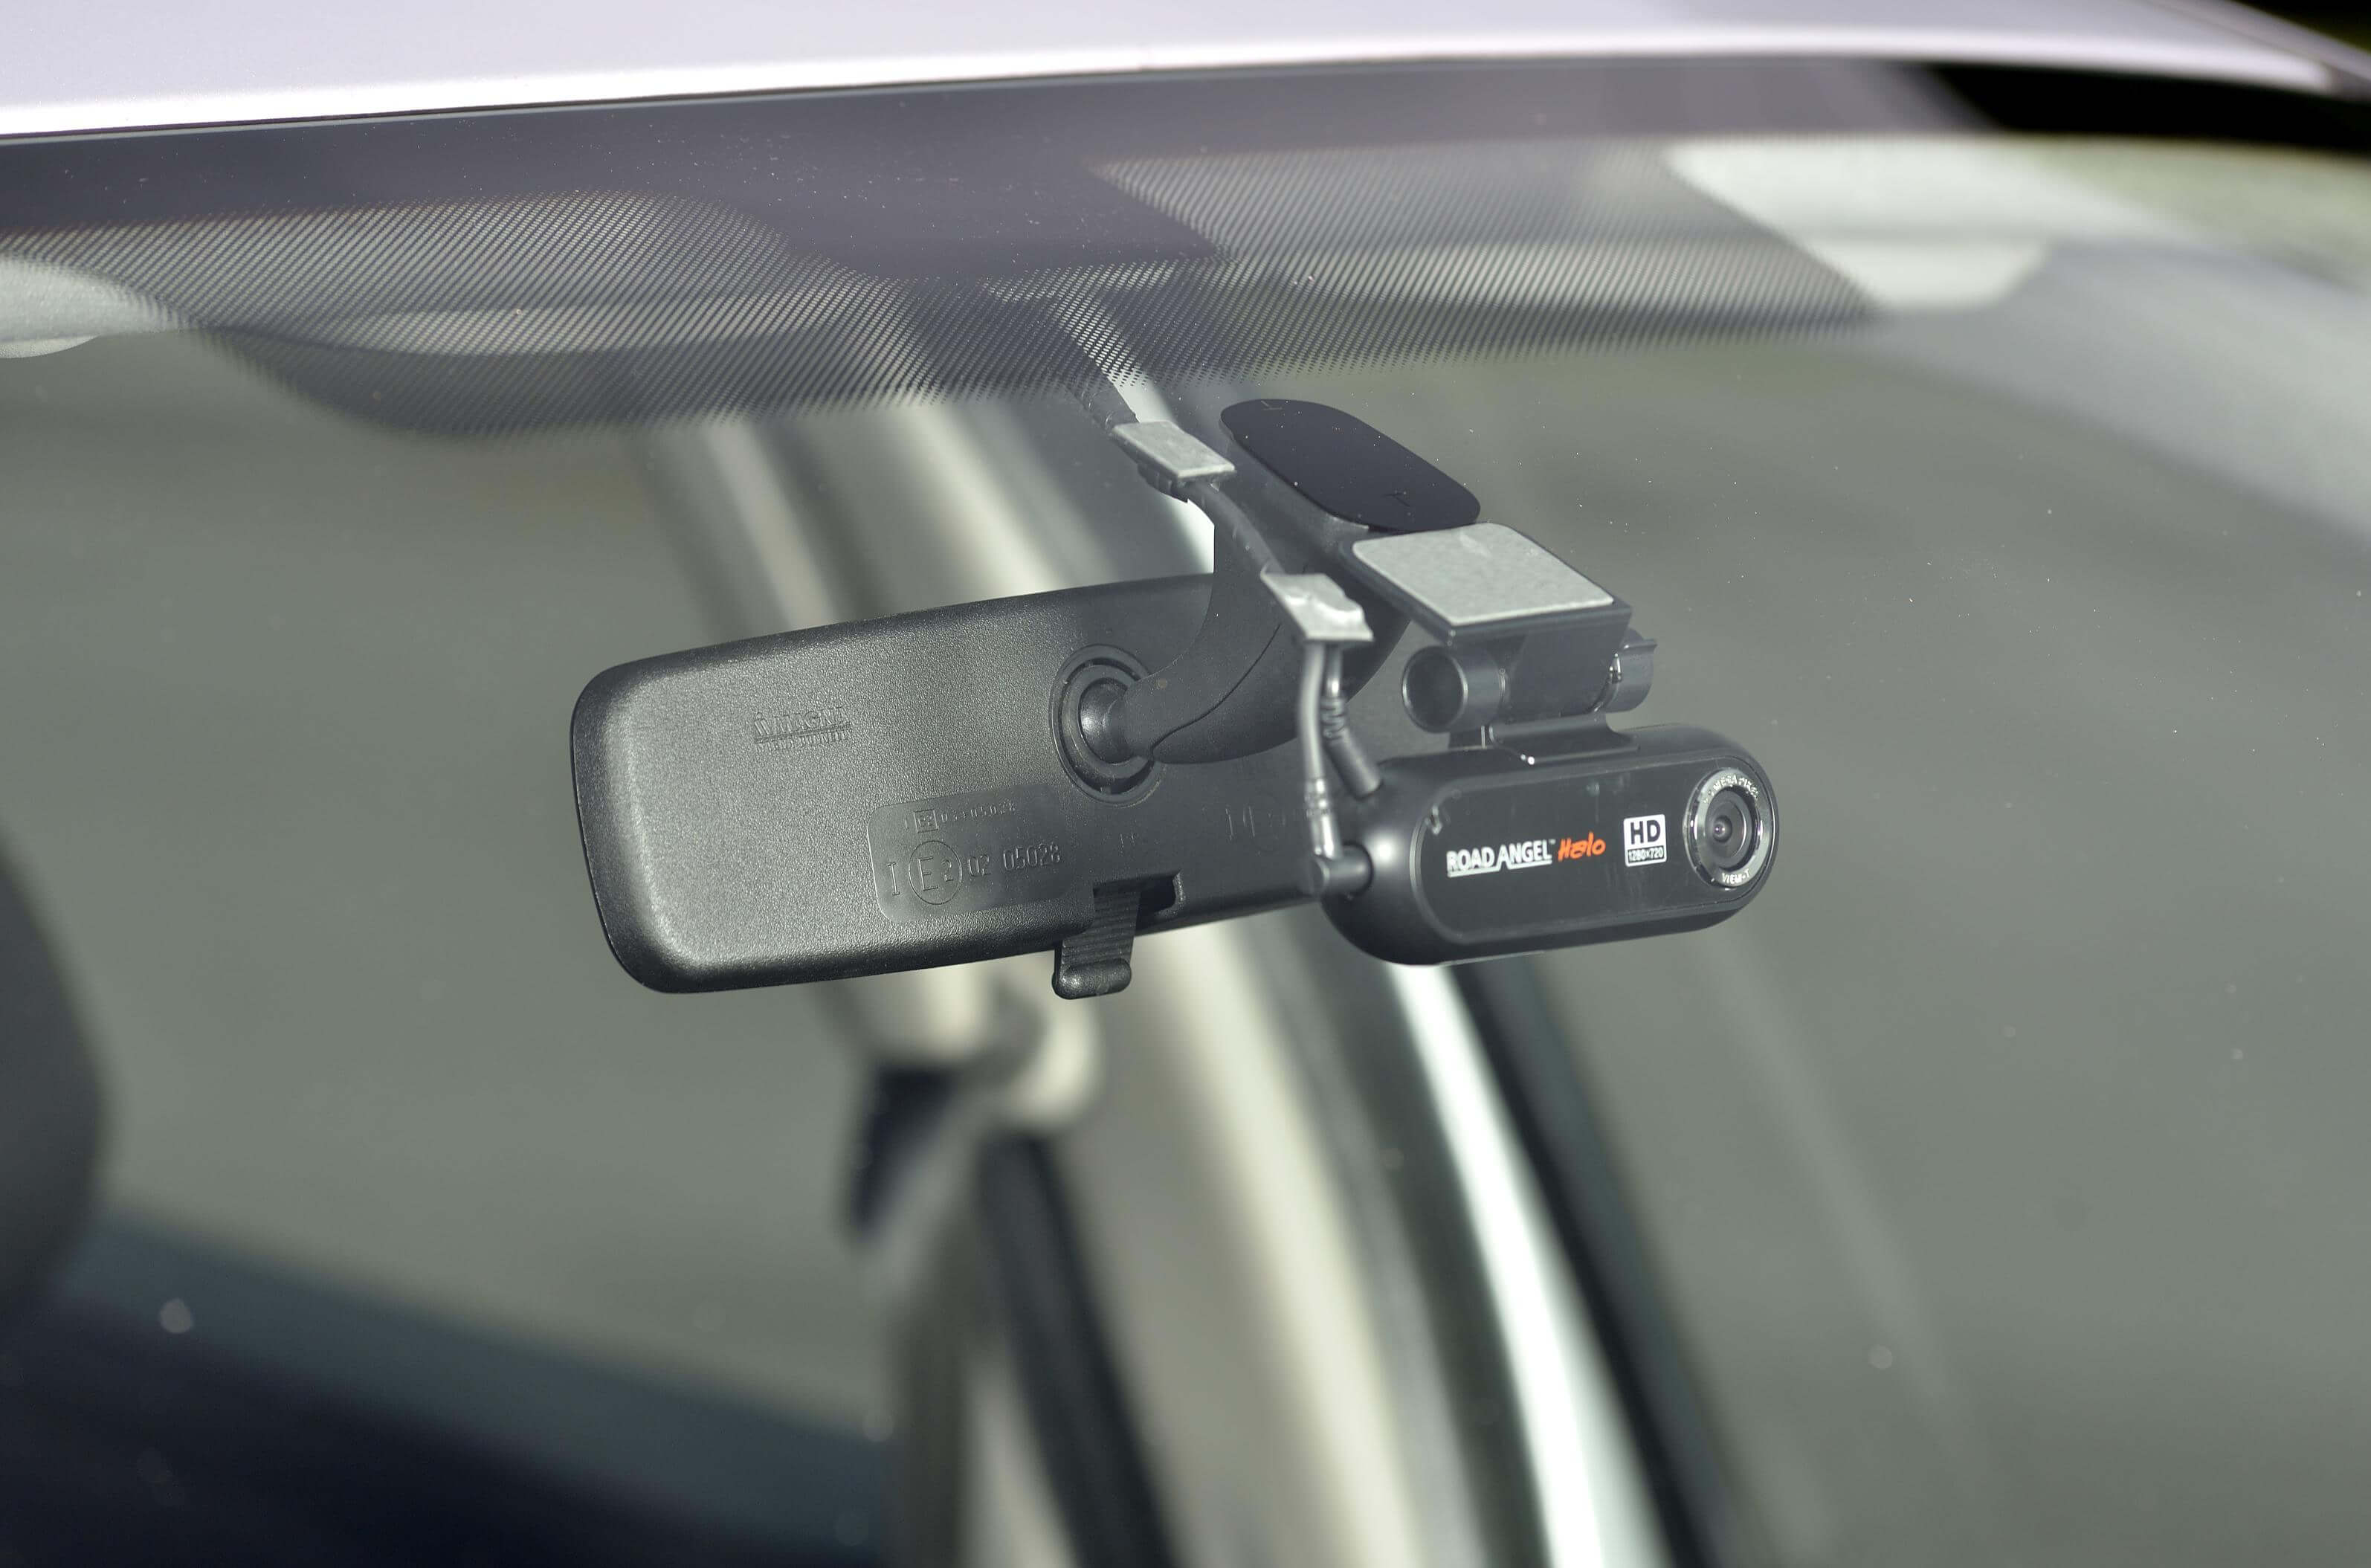 close up image of a dashcam mounted on the inside of a car windscreen